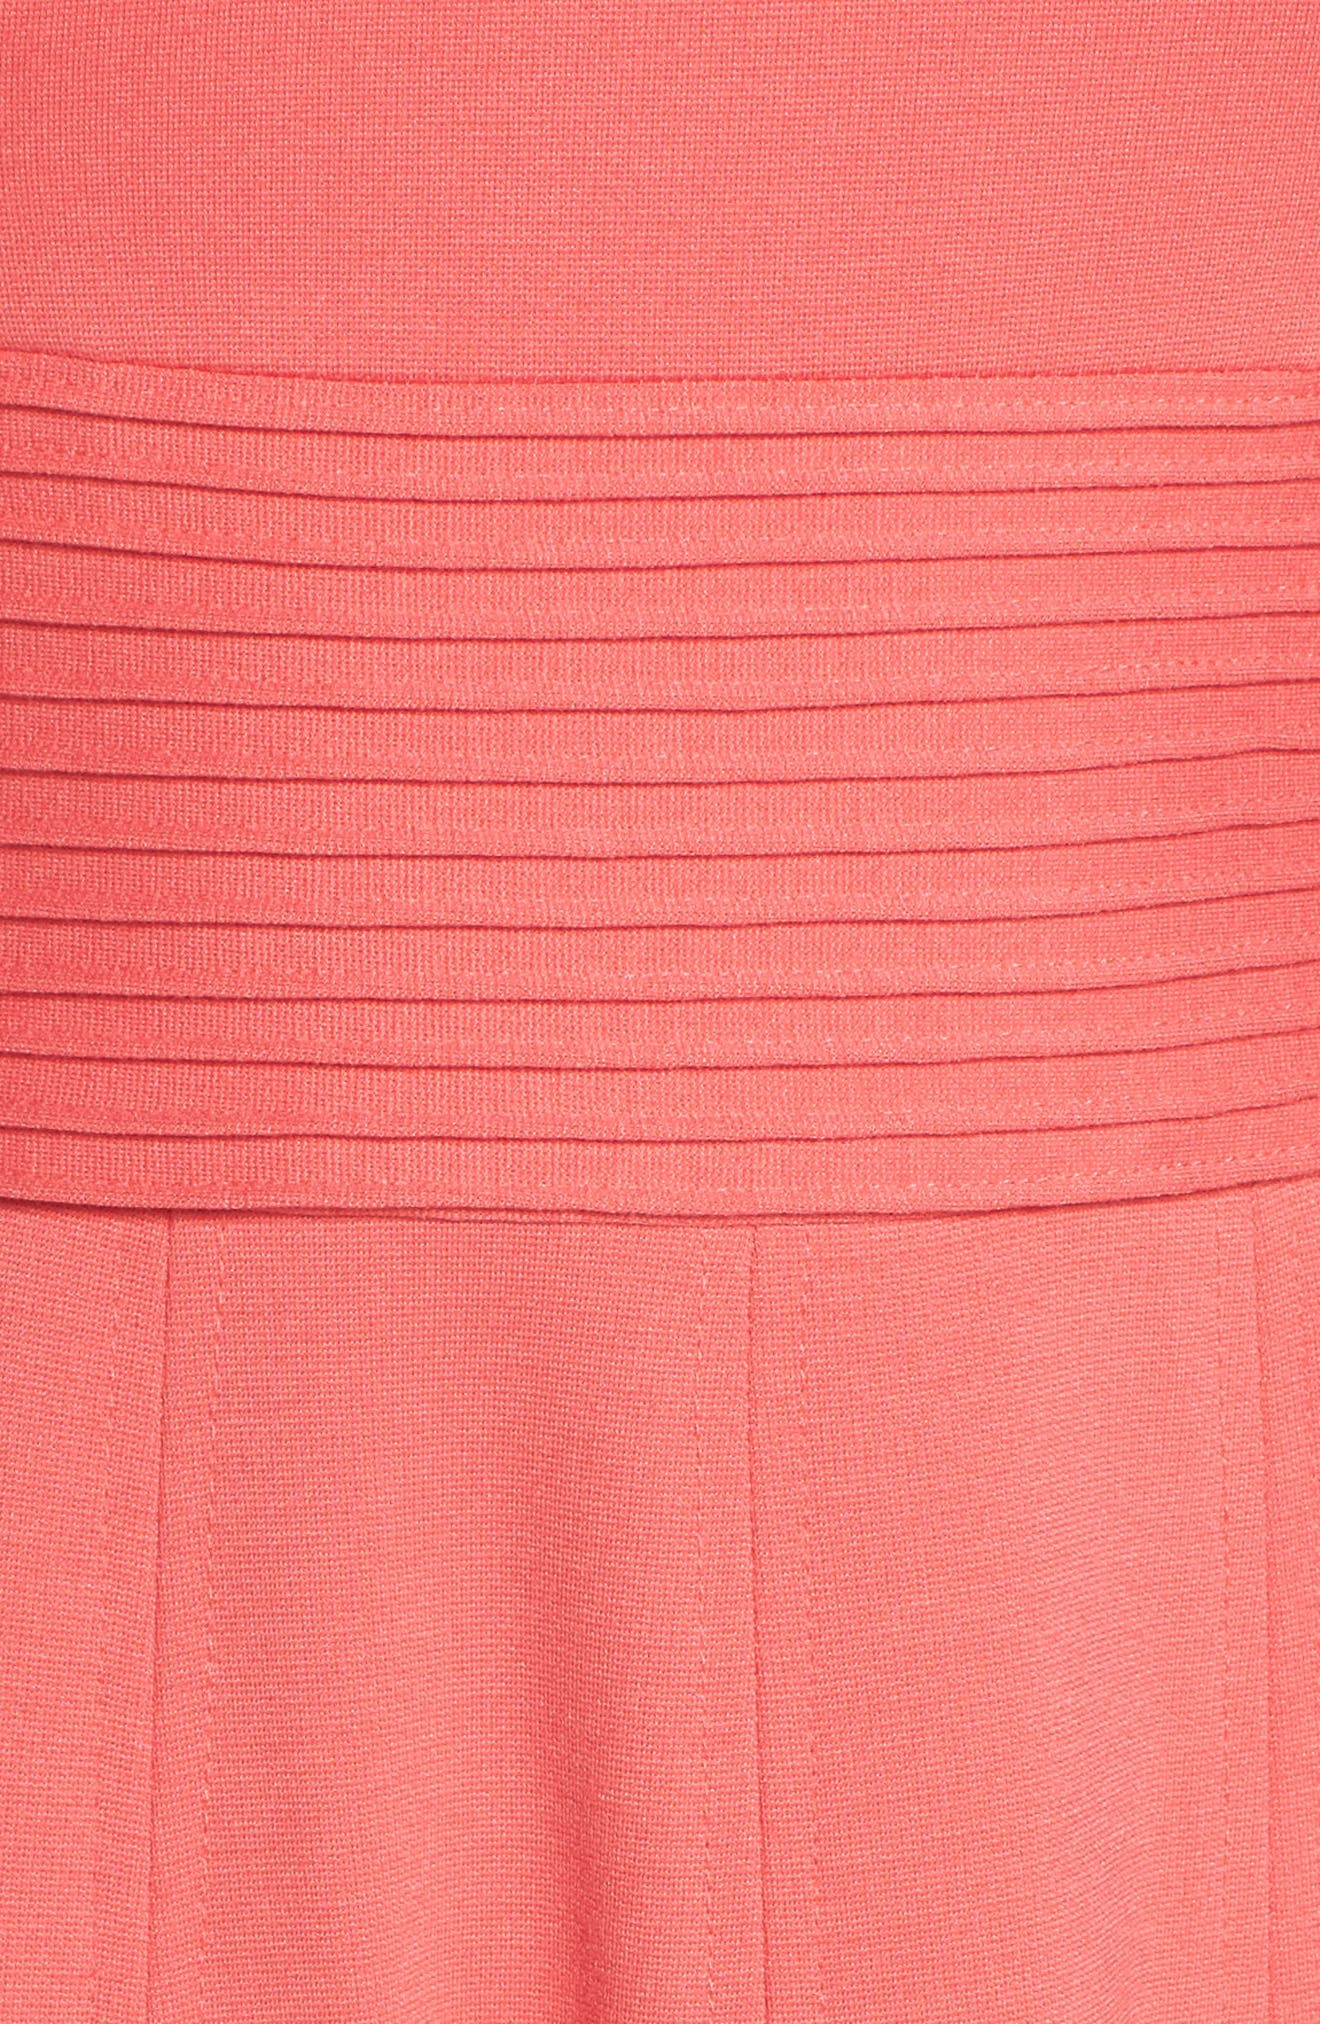 ,                             Pintucked Waist Seamed Ponte Knit Fit & Flare Dress,                             Alternate thumbnail 6, color,                             950